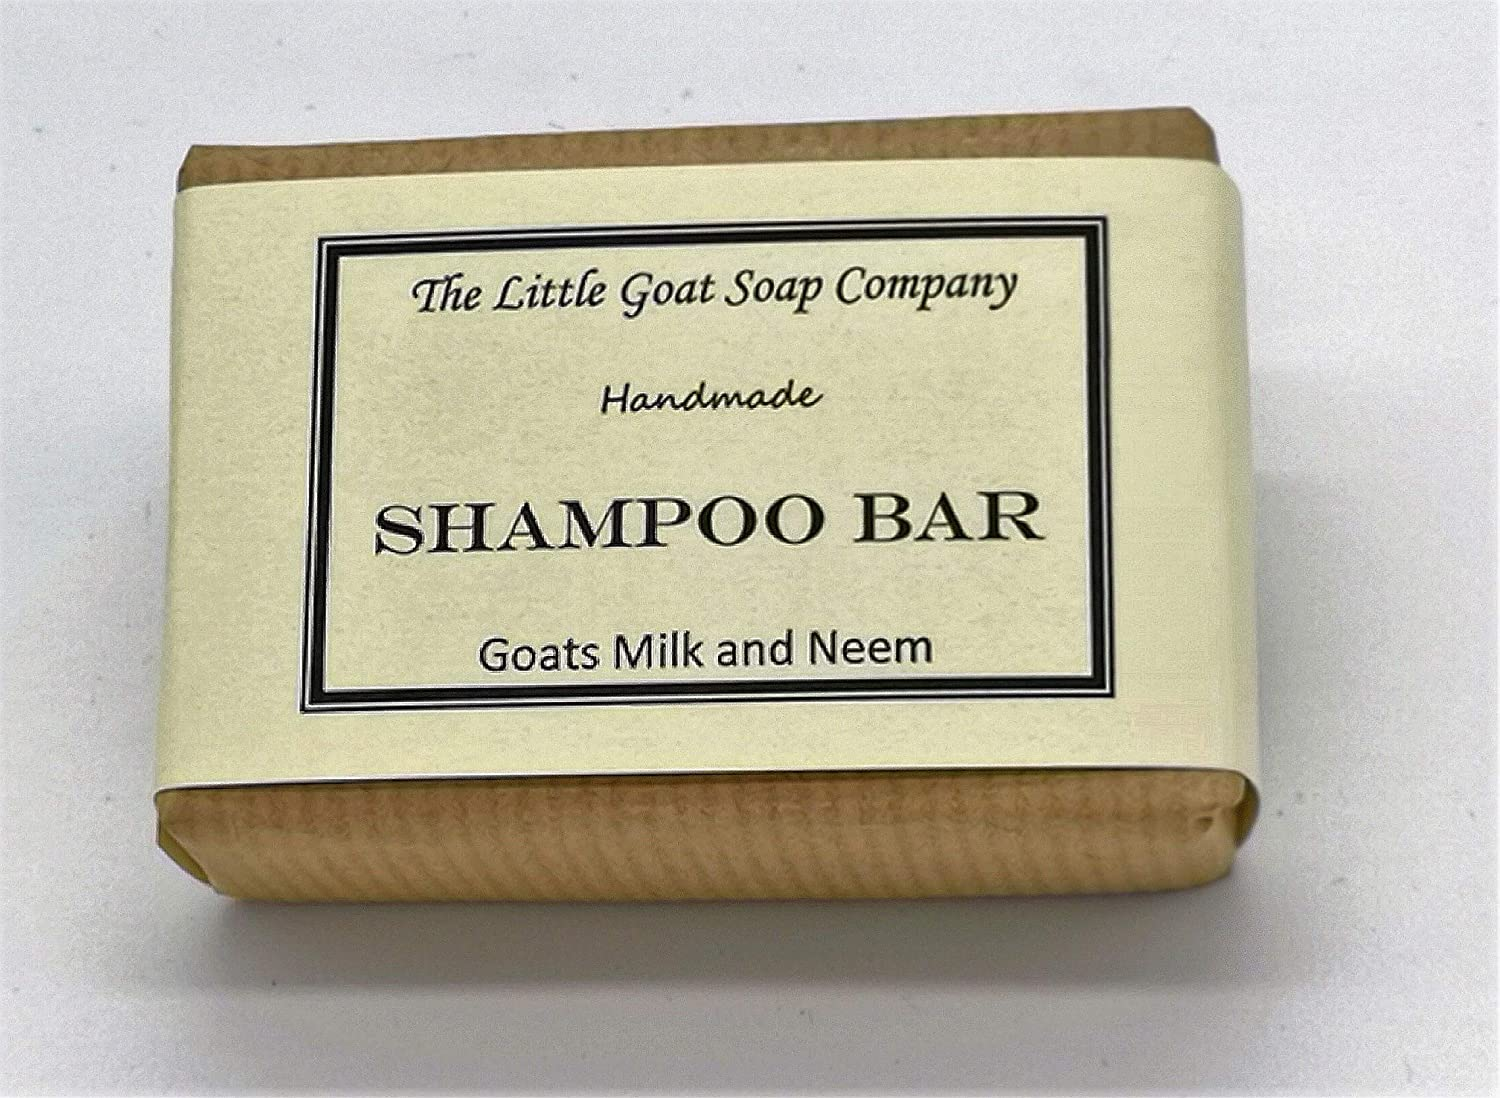 1 x Shampoo Bar - Goats Milk and Neem Oil 100G. Eczema, Psoriasis, Seborrhoeic Dermatitis. The Little Goat Soap Company LGSC-Sh1